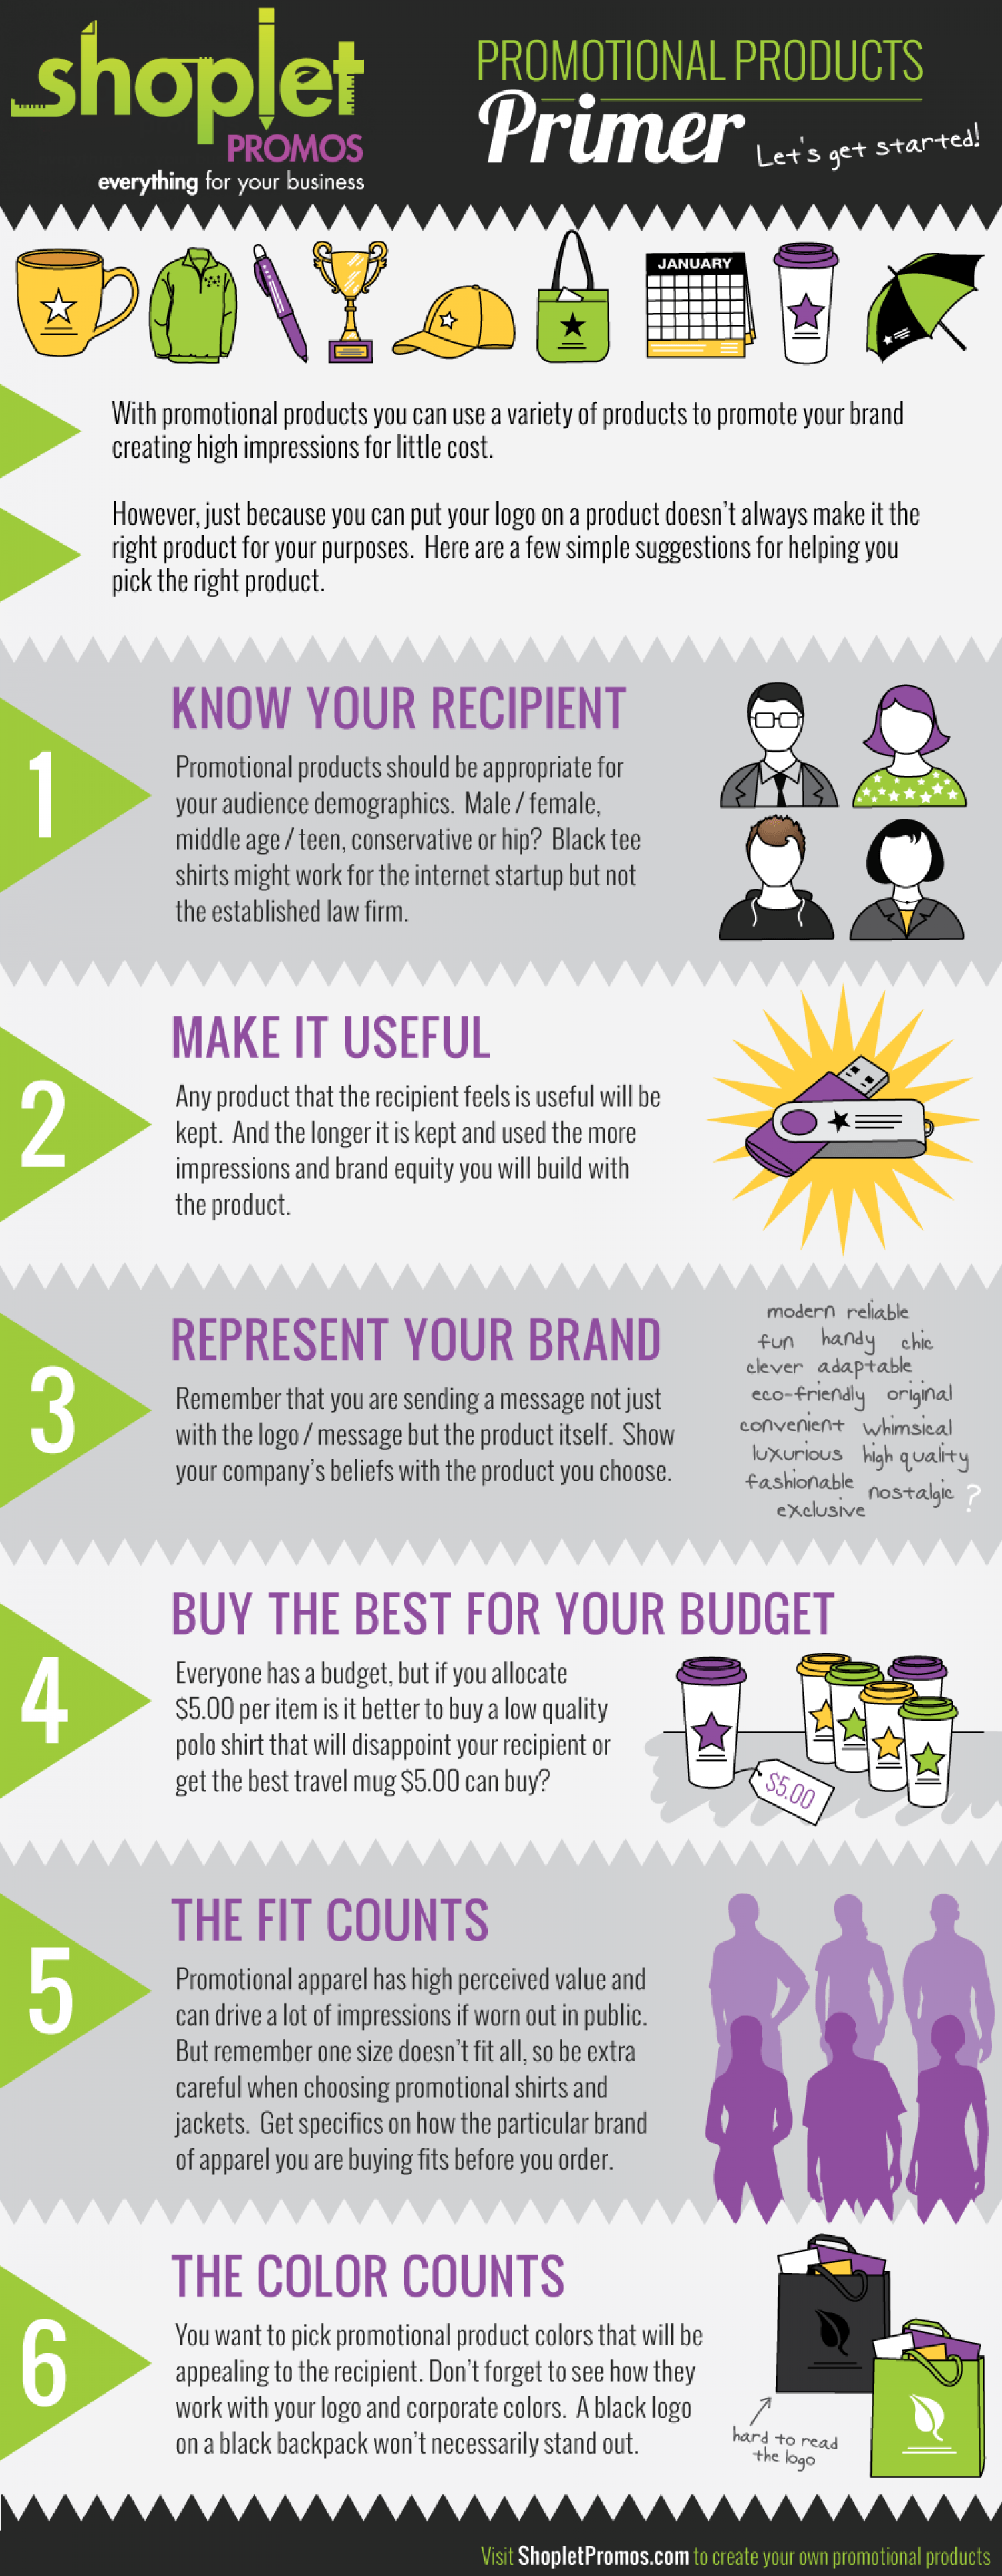 Promotional Products Primer Infographic